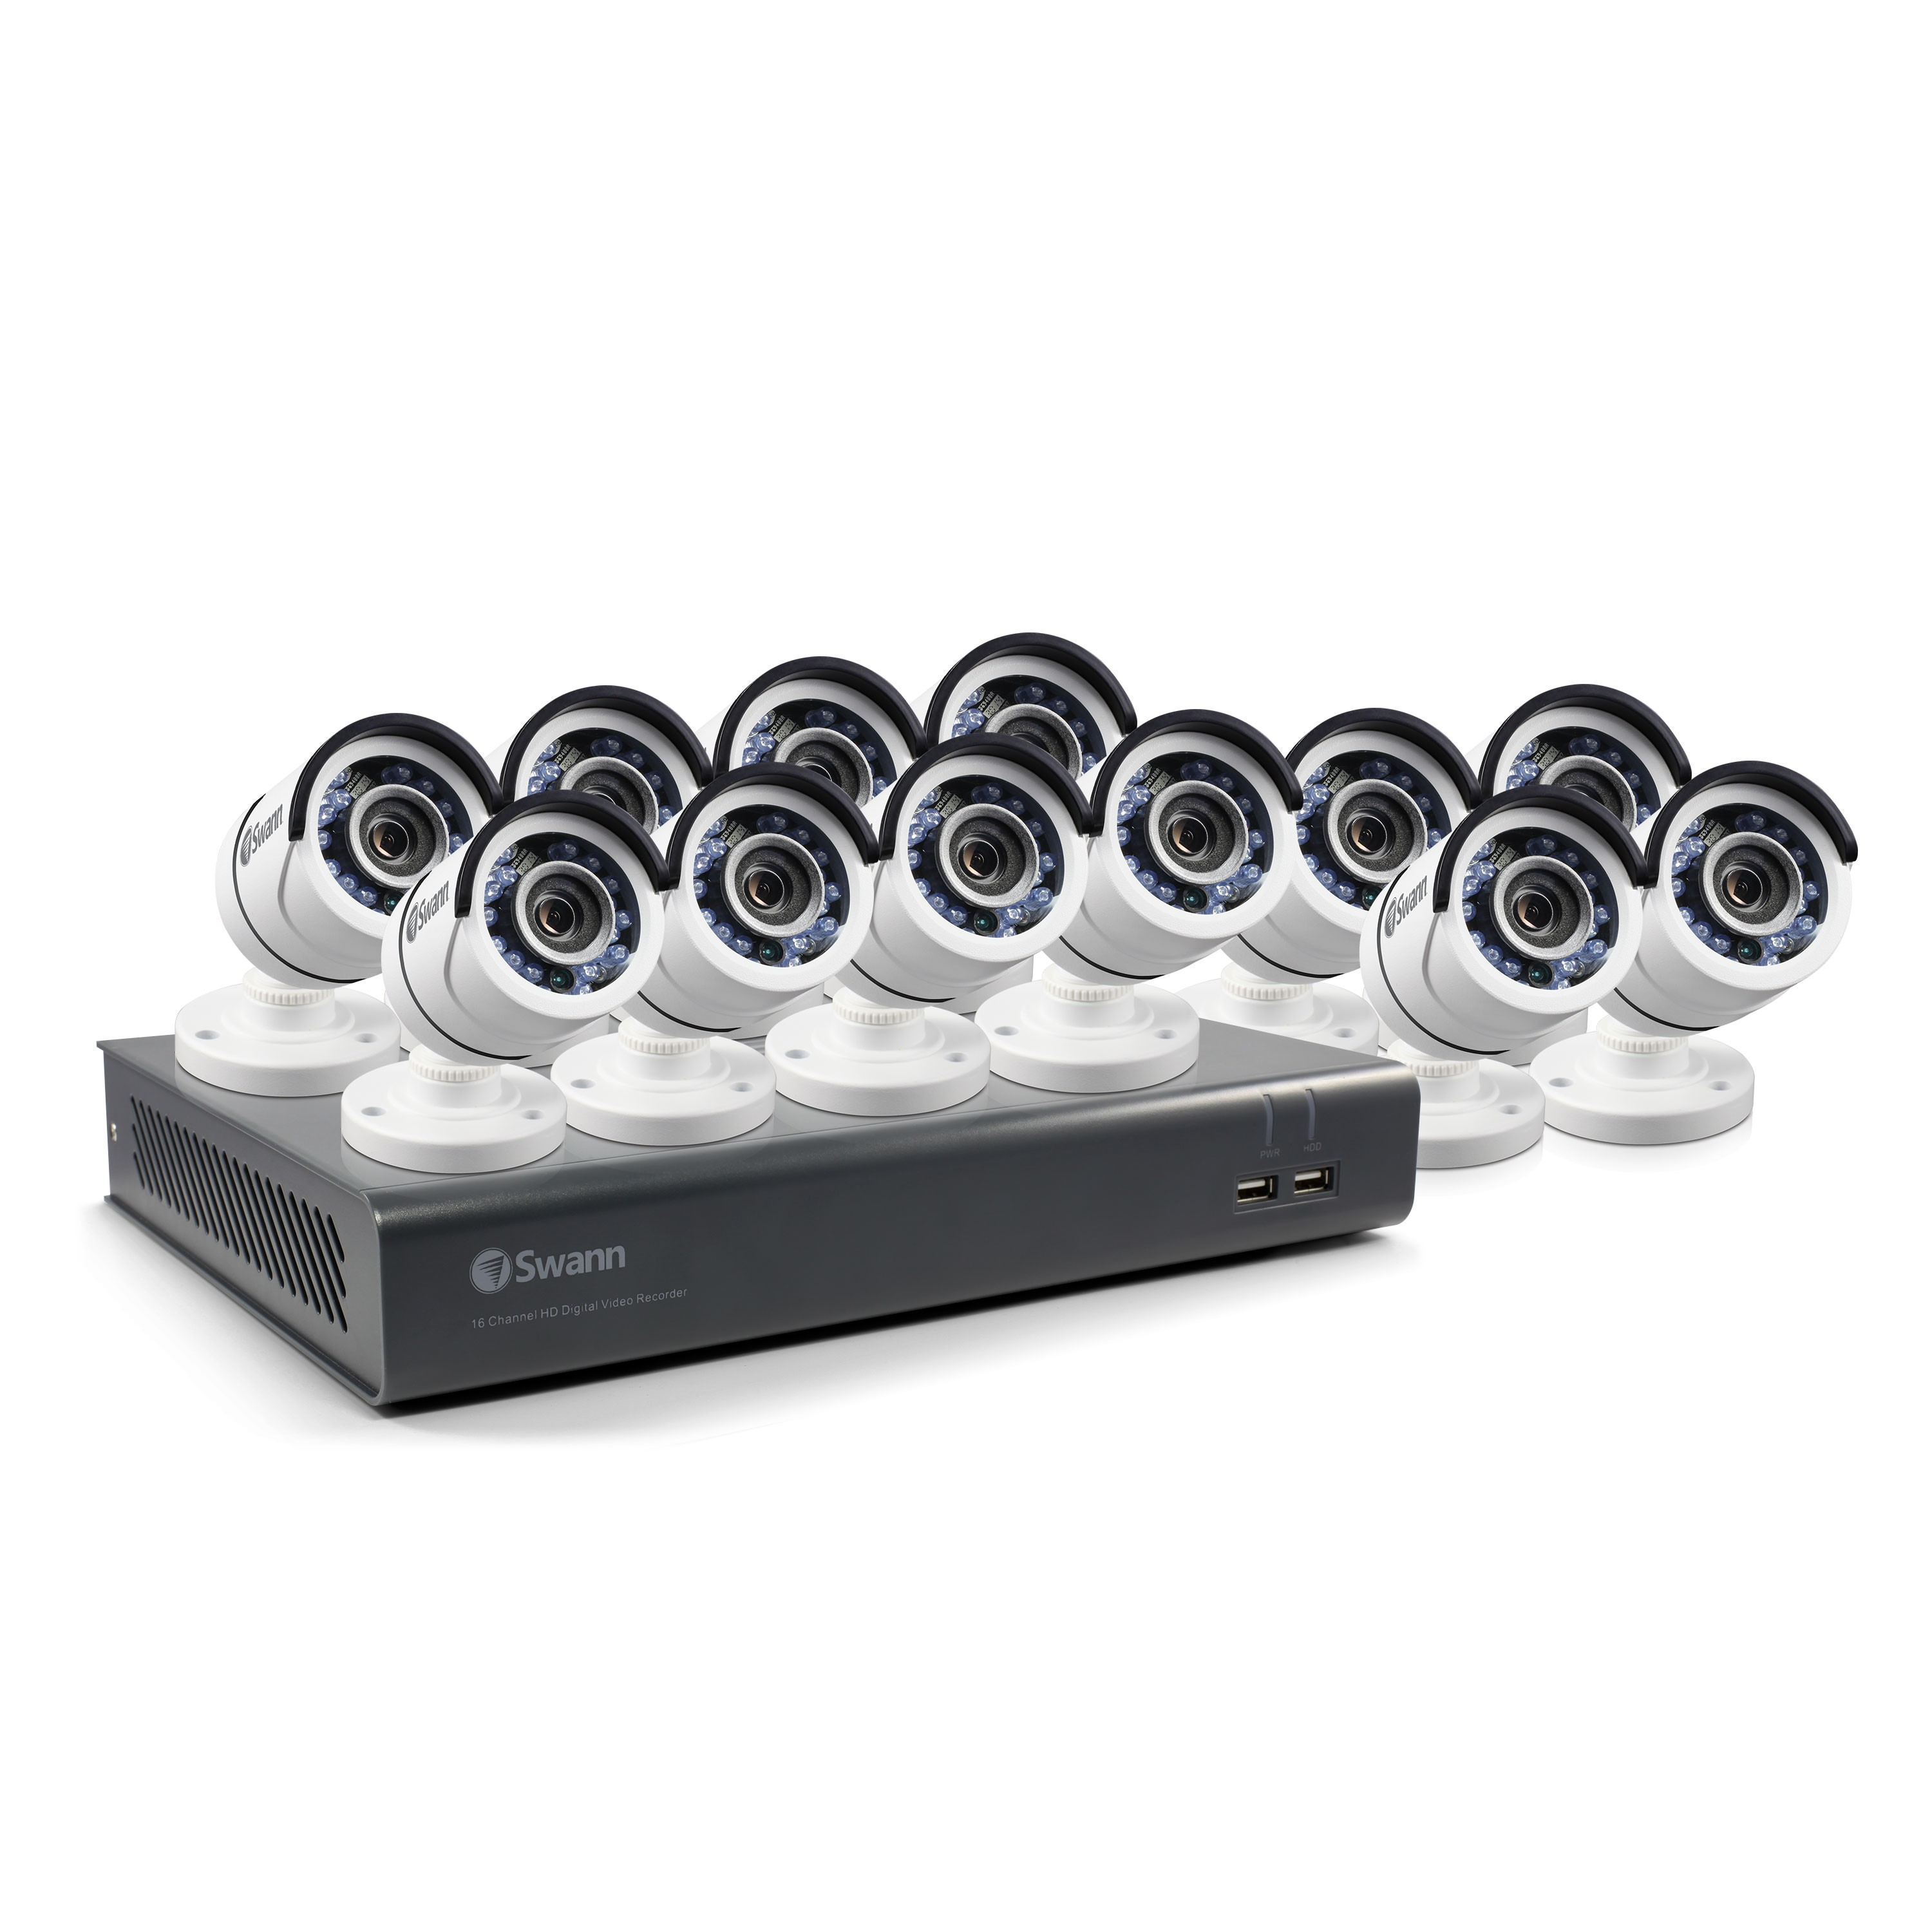 SWDVK-1645912 12 Camera 16 Channel 1080p Full HD DVR Security System 2TB HDD, Motion Sensing + Night Vision  -